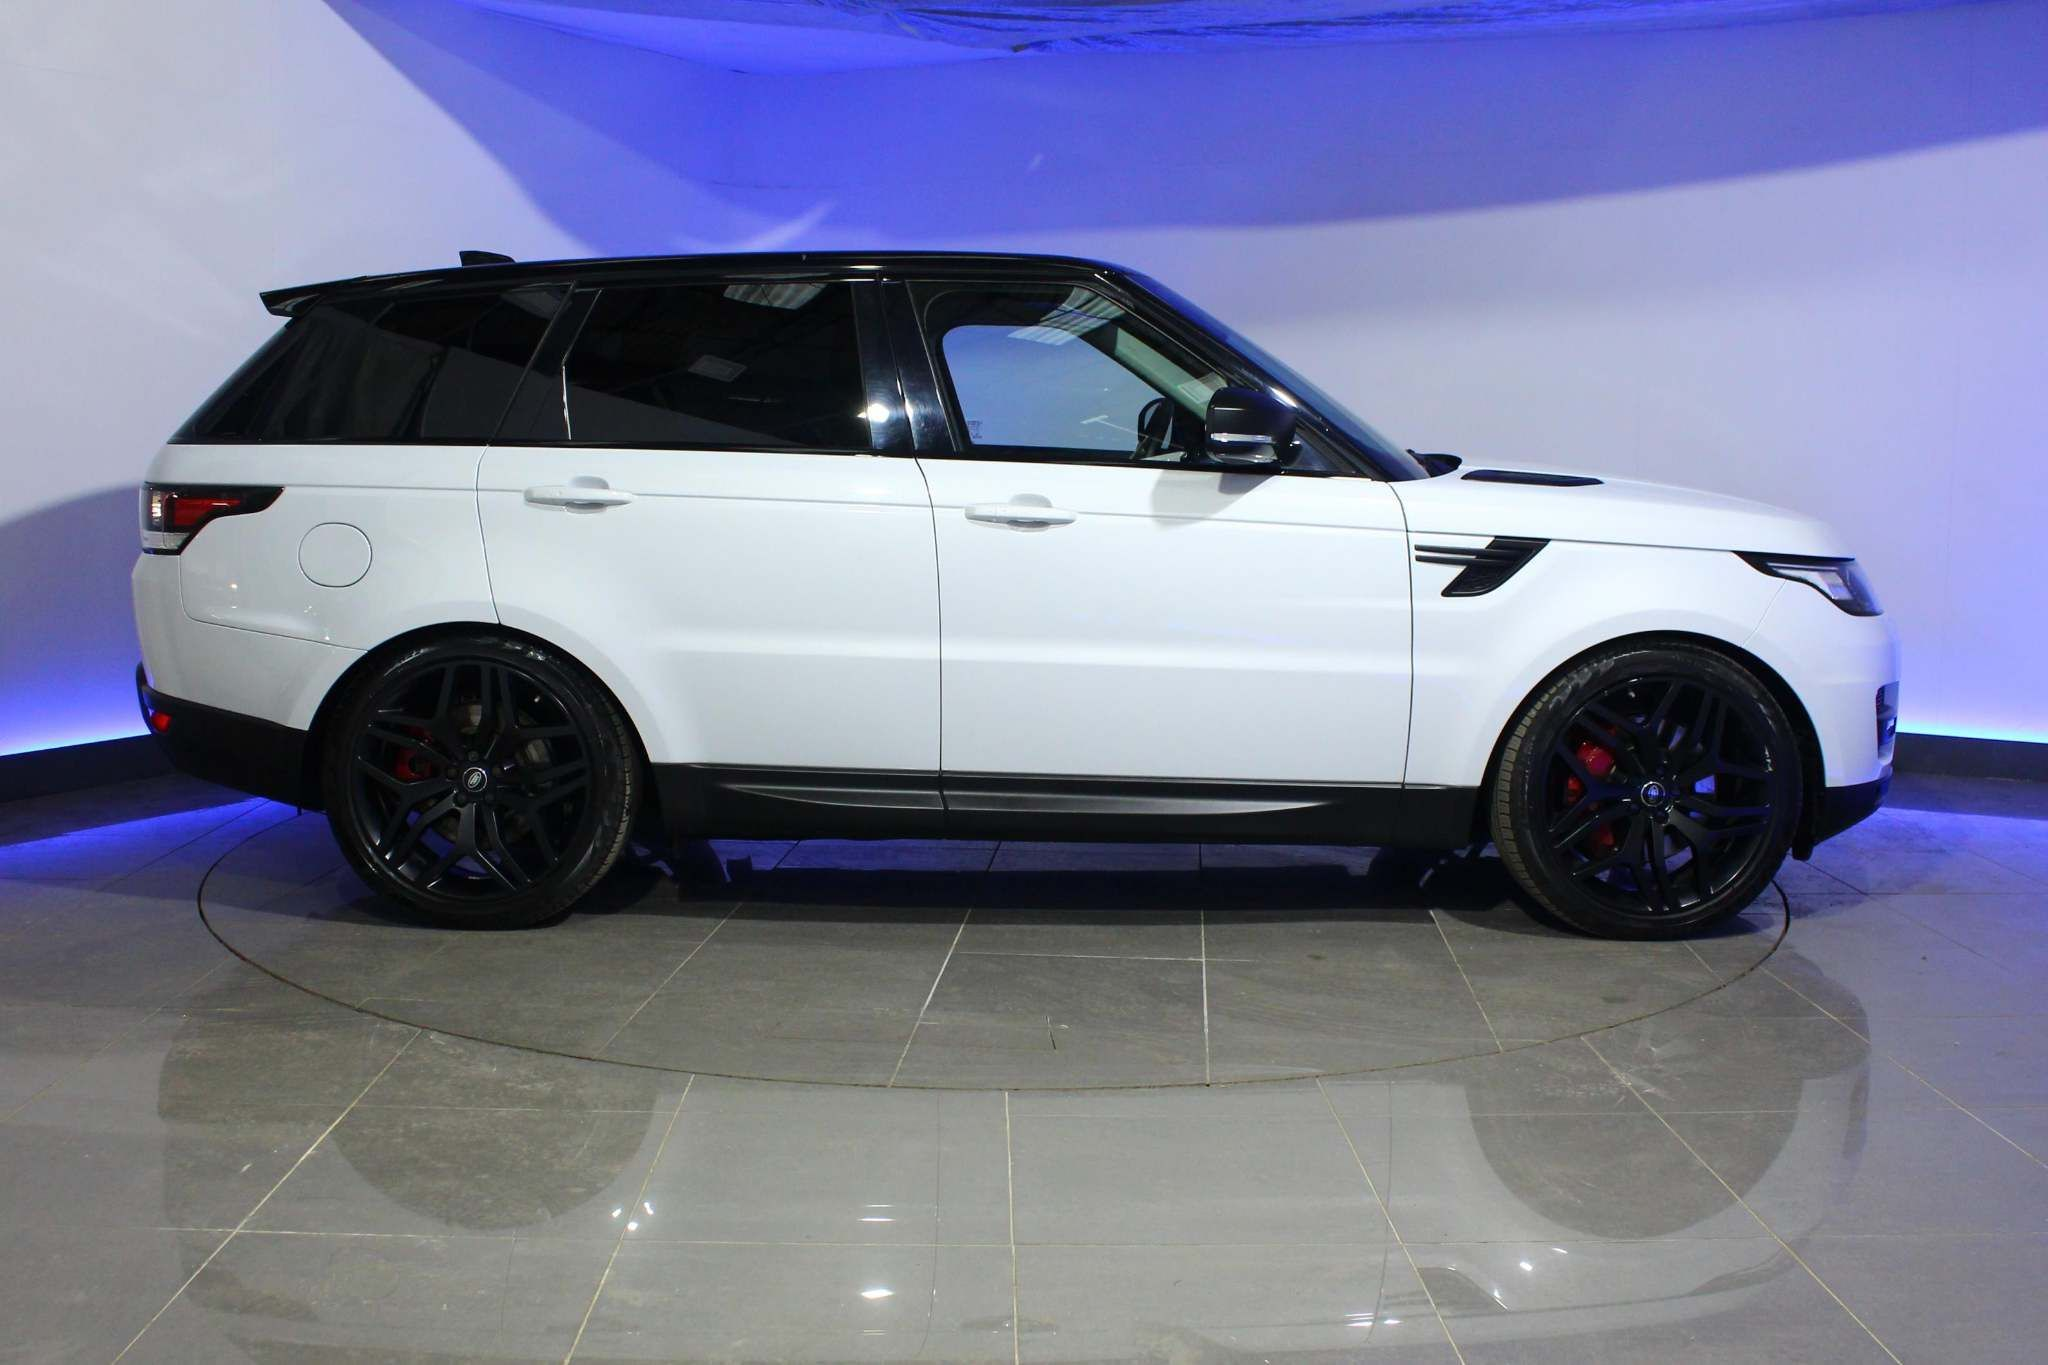 Used Land Rover Range Rover Sport 3.0 Sd V6 Hse Dynamic 4x4 (s/s) 5dr